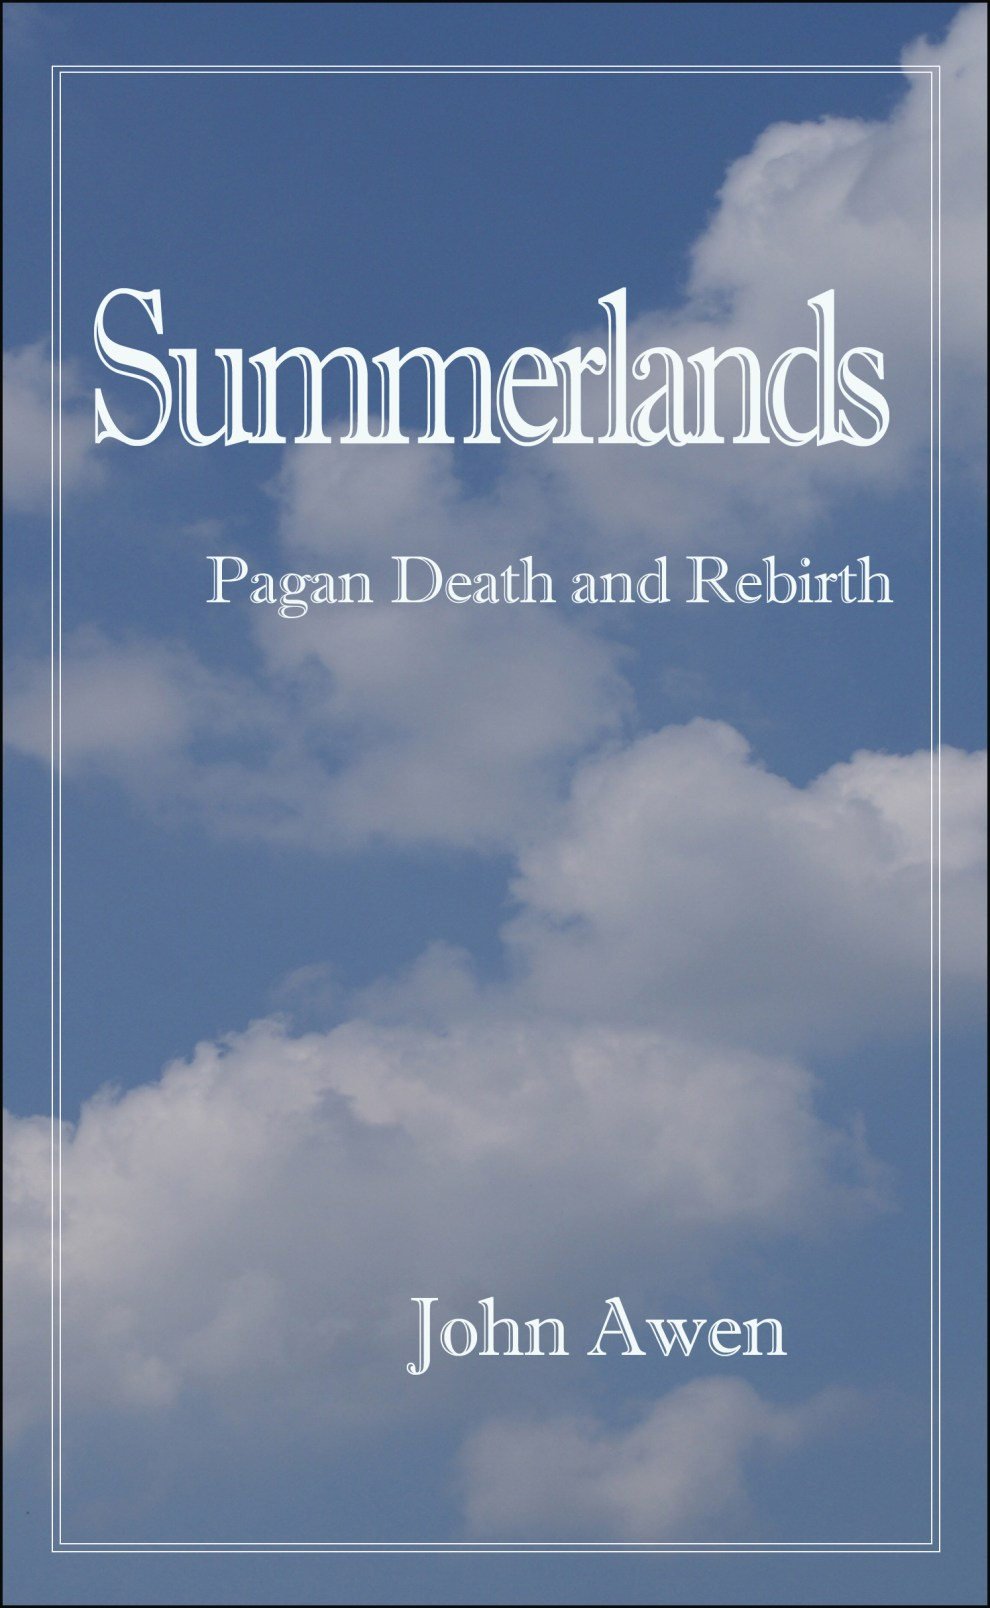 Summerlands